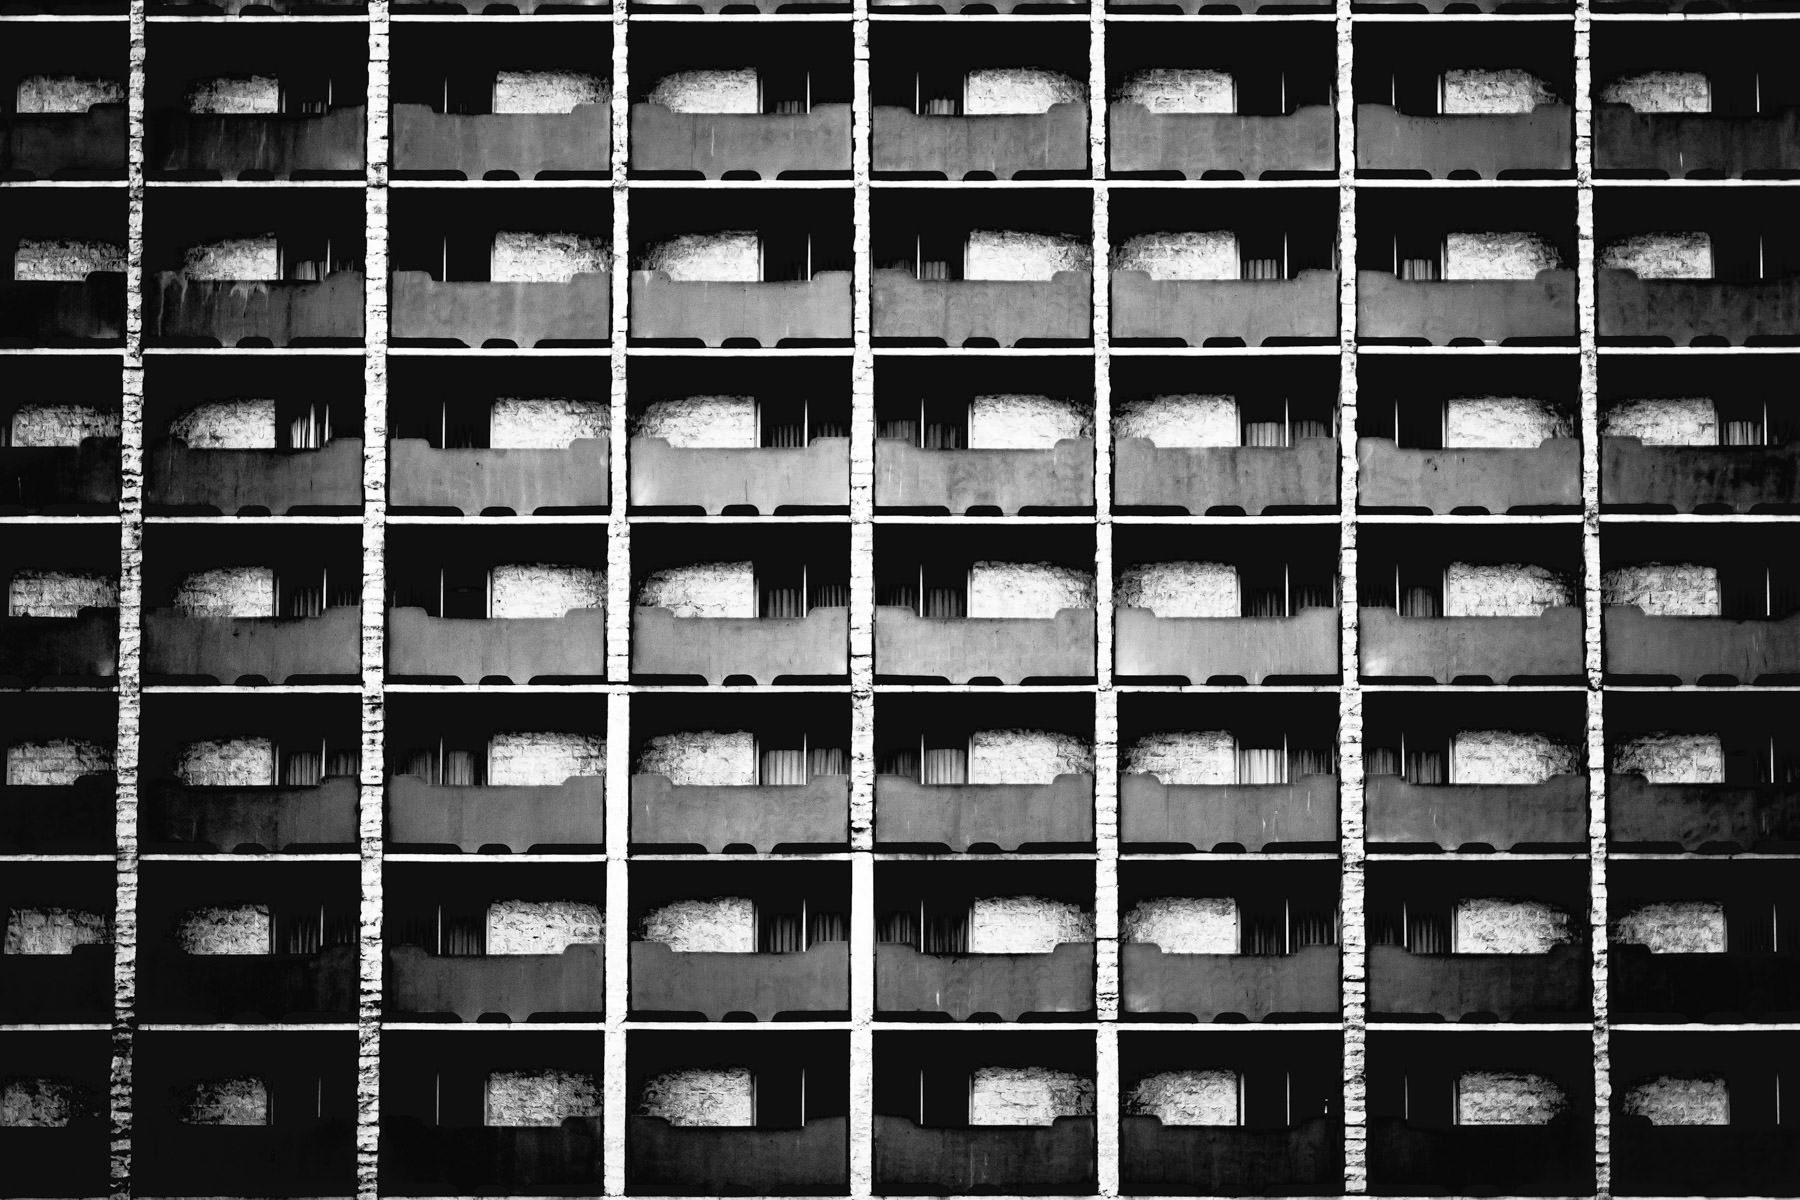 Exterior abstract study of the Imperial Palace, Las Vegas.